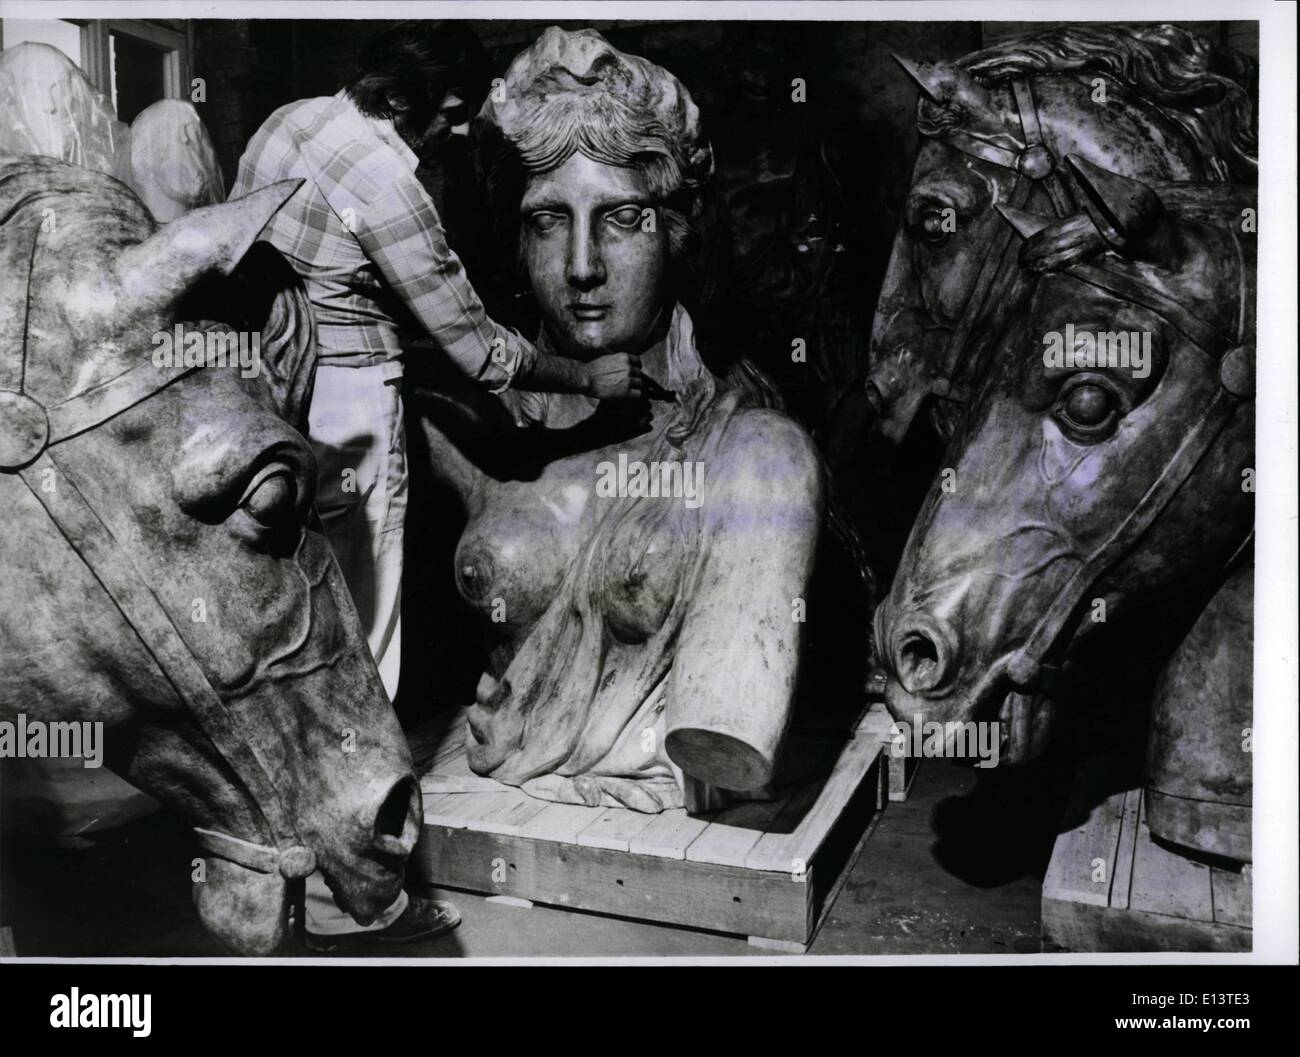 Mar. 27, 2012 - Exhibition ''Berlin And The Antique'' The plaster cast of God Victoria of the Brandeburger Tor of Berlin and the horse-heads of her triumphal car are exhibited now in the orangerie of the castle Charlottenburg. It's the eye- catcher of the great exhibition ''Berlin and the Antique'', which decoy from April 22 to July 232 interested visitors from all over the world to Berlin. The exhibition is connect with the 150 birthday of the German Archaeologist Institute - Stock Image